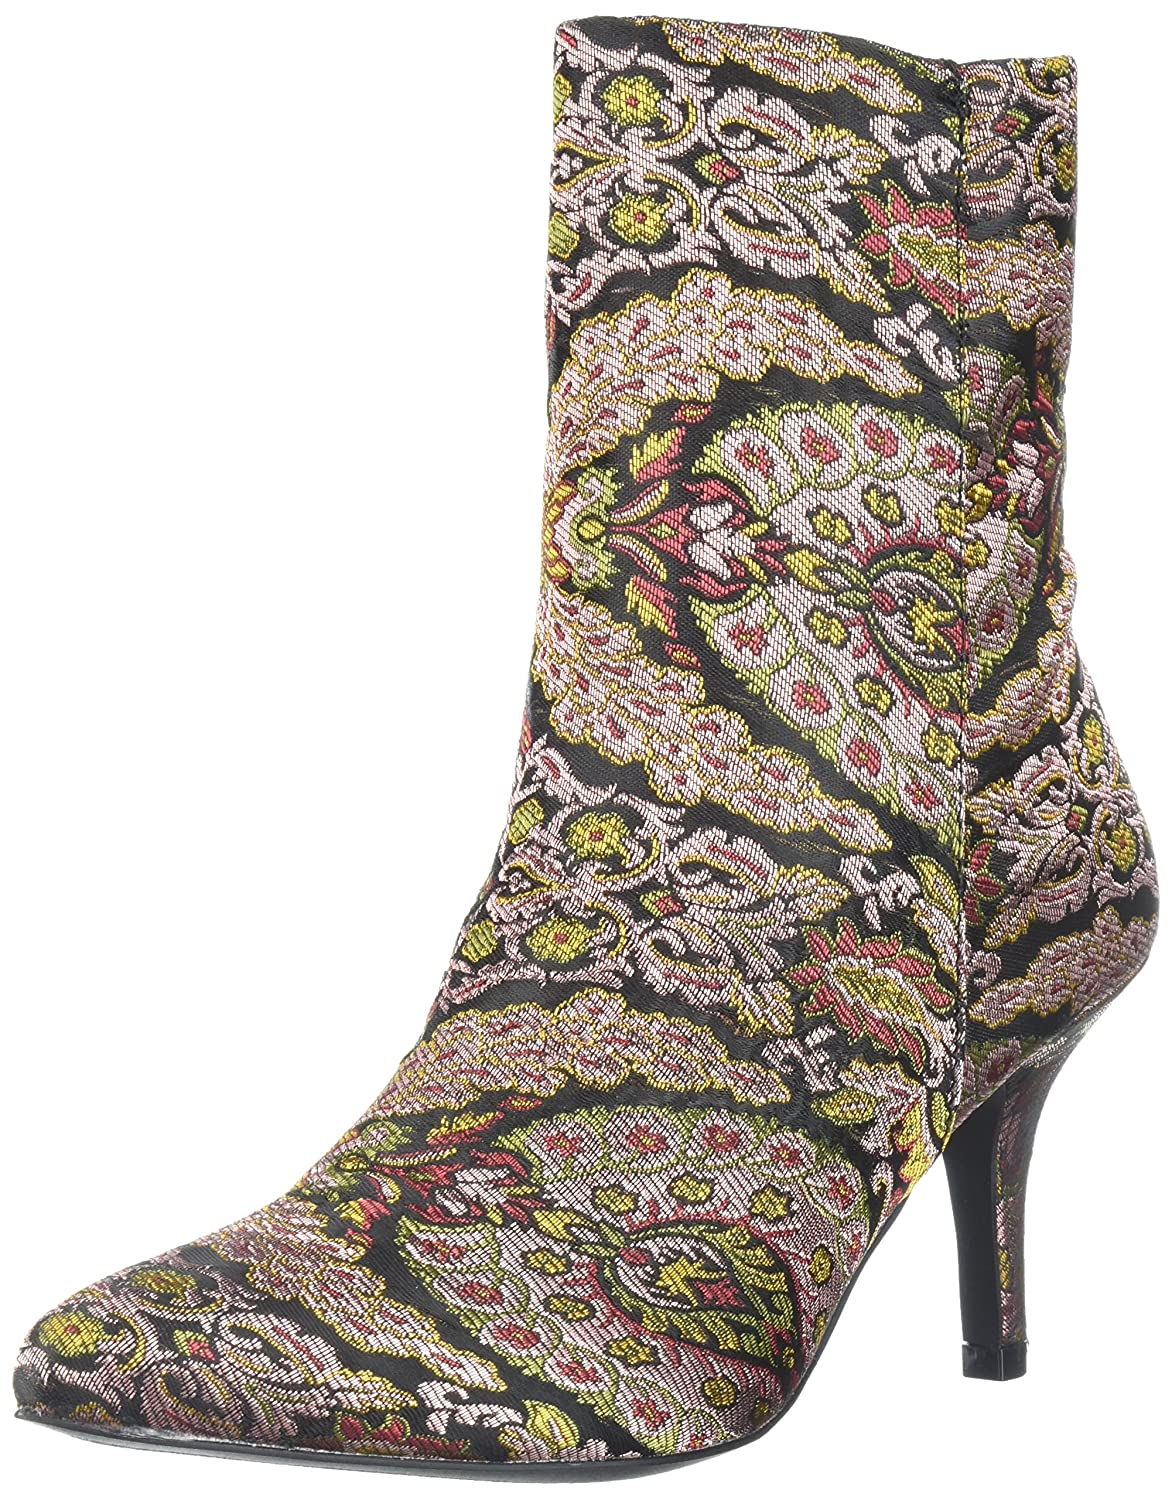 Qupid Women's Portia-05 Fashion Boot B074NJJPKY 9 B(M) US|Mauve Multi